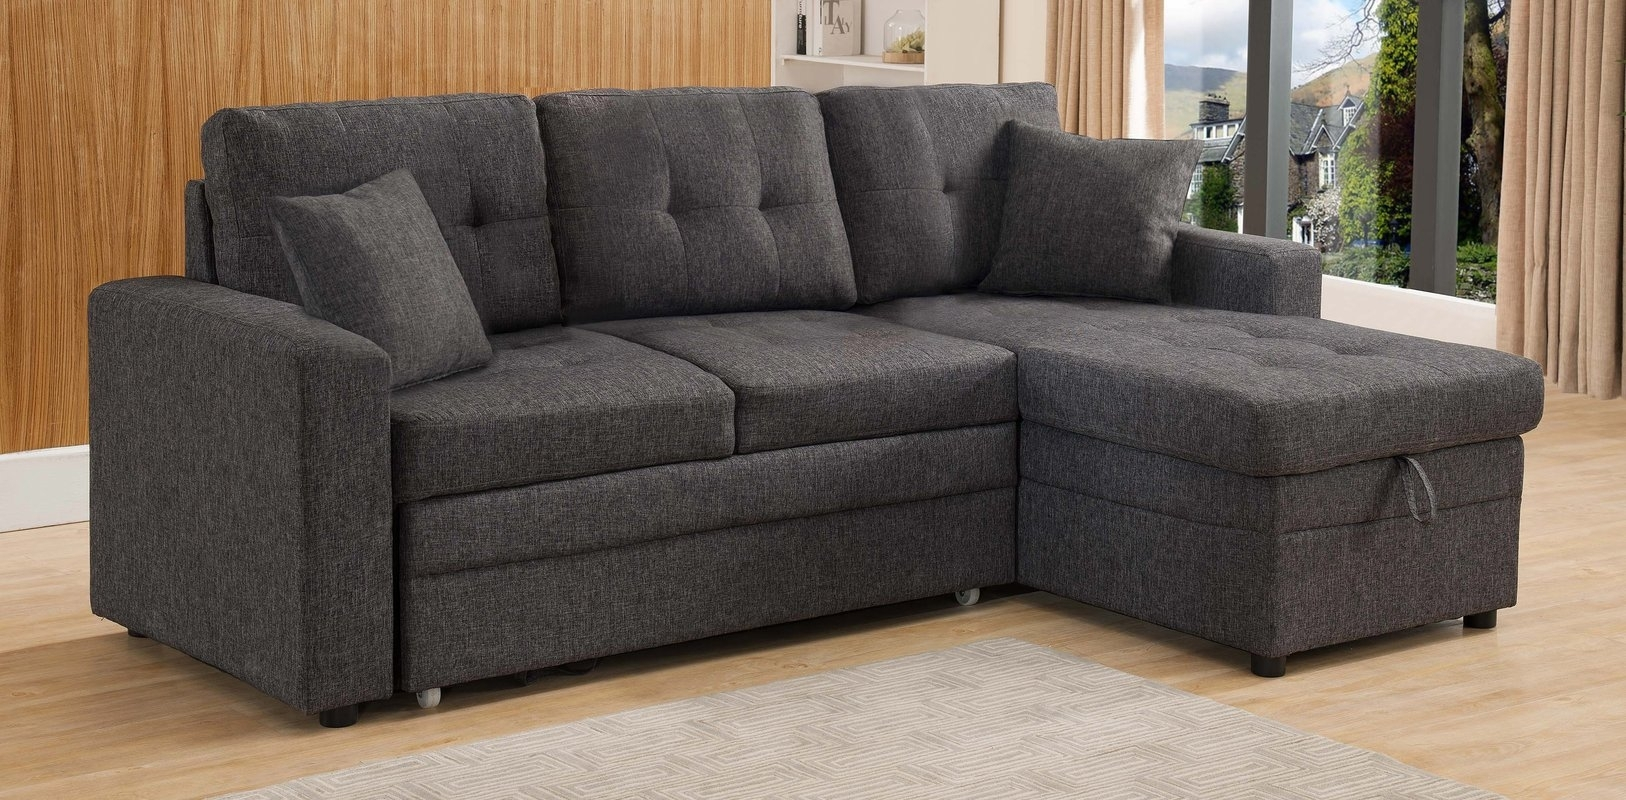 Photos: Sleeper Sofas With Chaise, – Longfabu With Regard To Taren Reversible Sofa/chaise Sleeper Sectionals With Storage Ottoman (Image 14 of 25)